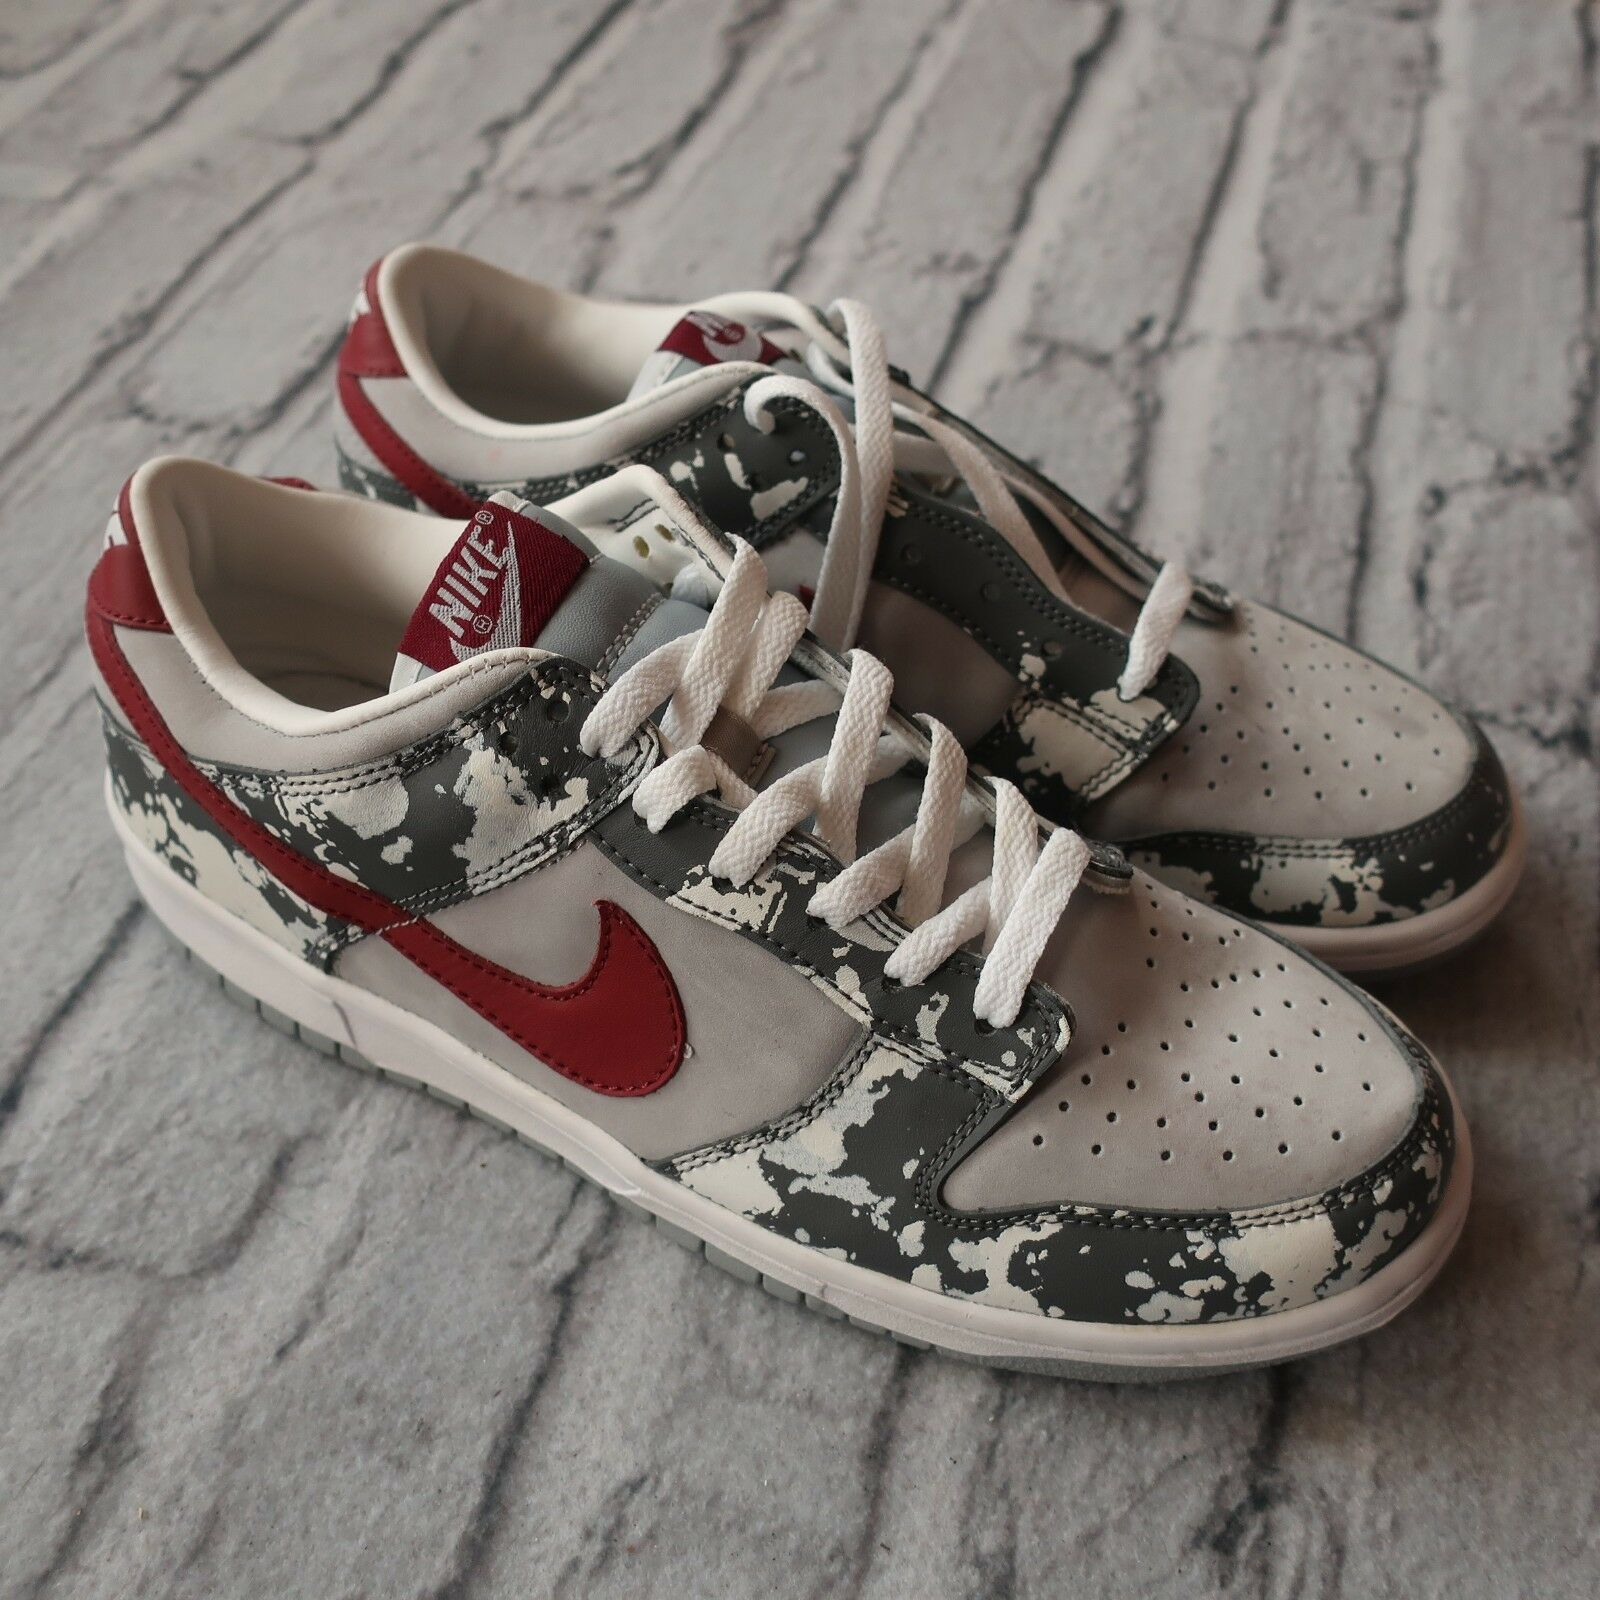 Vintage 2002 Nike Dunk Premium Splatter shoes 305979-061 Size 9.5